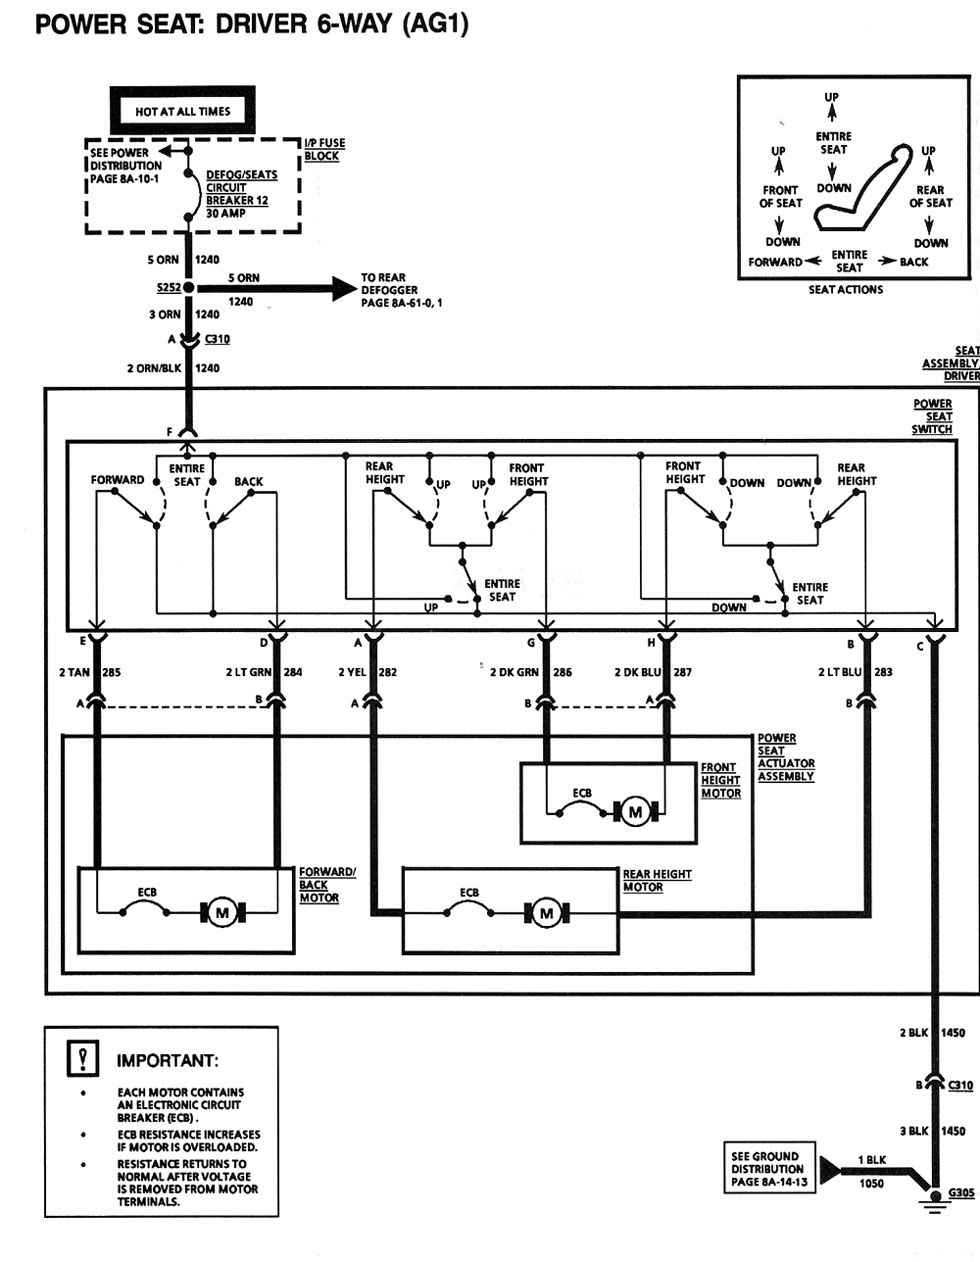 wiring diagram 1999 jaguar xj8 1999 saab 93 diagram wiring